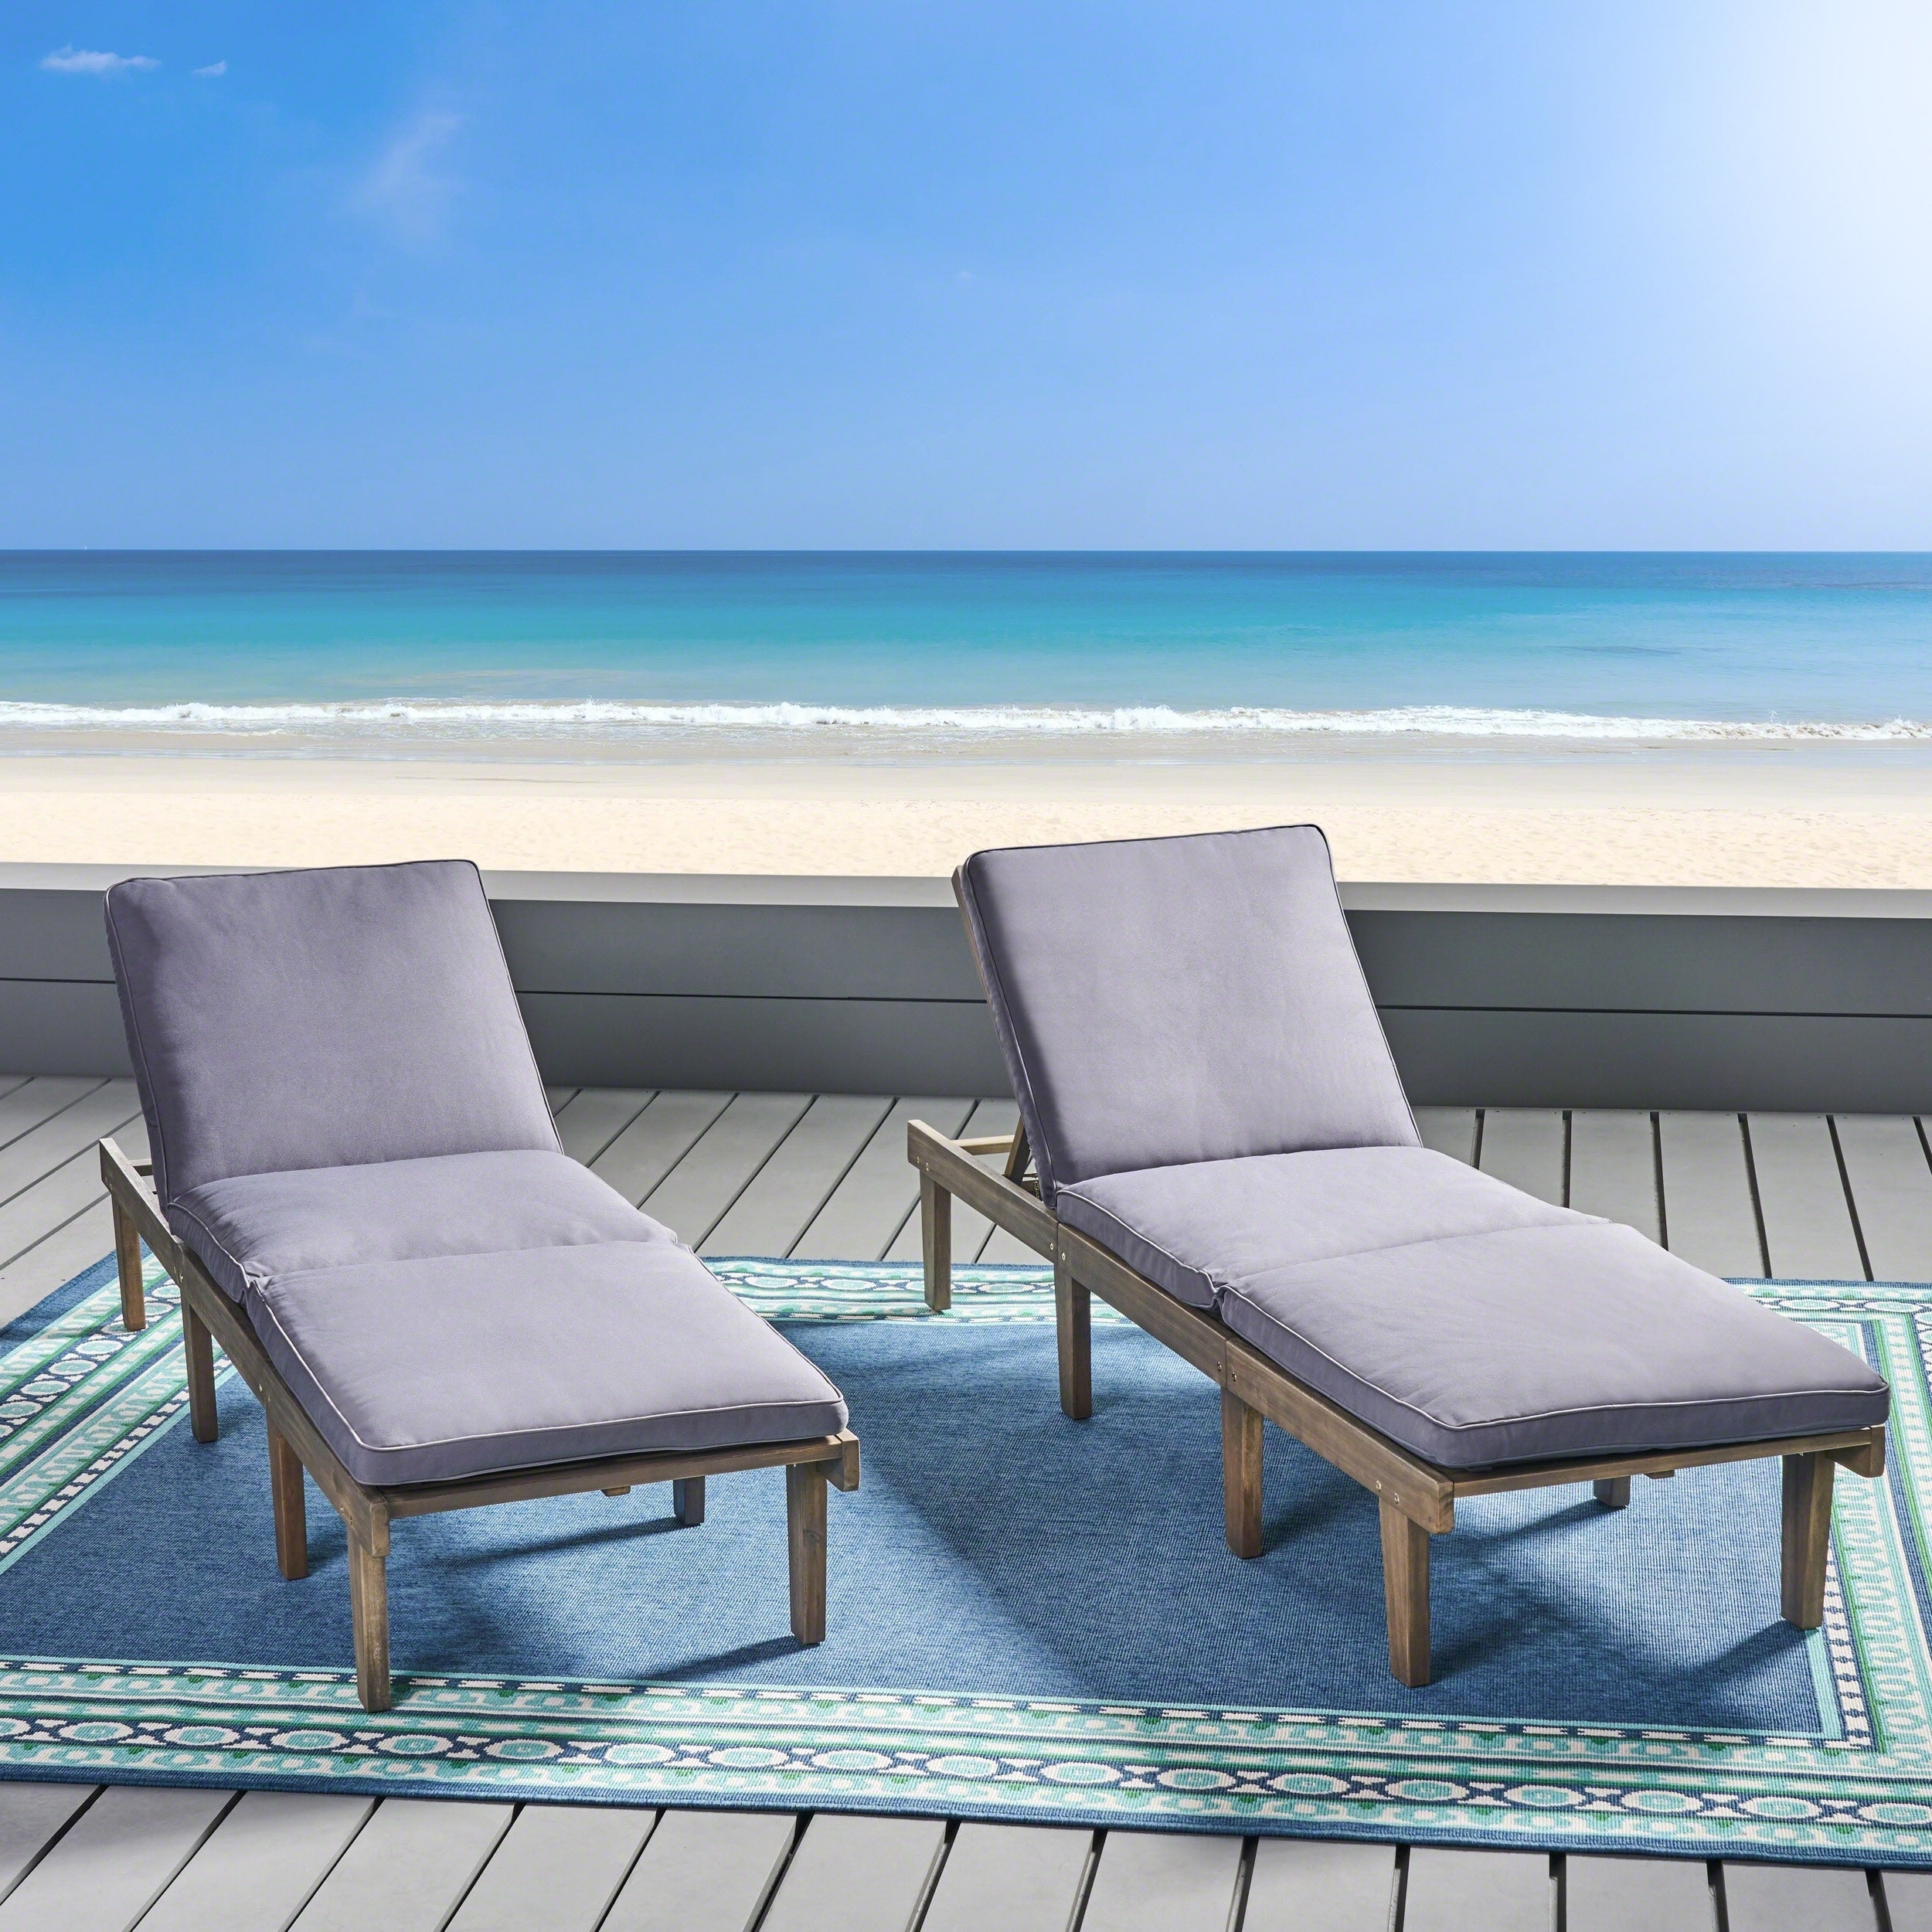 Most Recently Released Ariana Outdoor Acacia Wood Chaise Lounge With Cushion (Set Of 2) Intended For Wood Blue And White Cushion Outdoor Chaise Lounge Chairs (View 13 of 25)